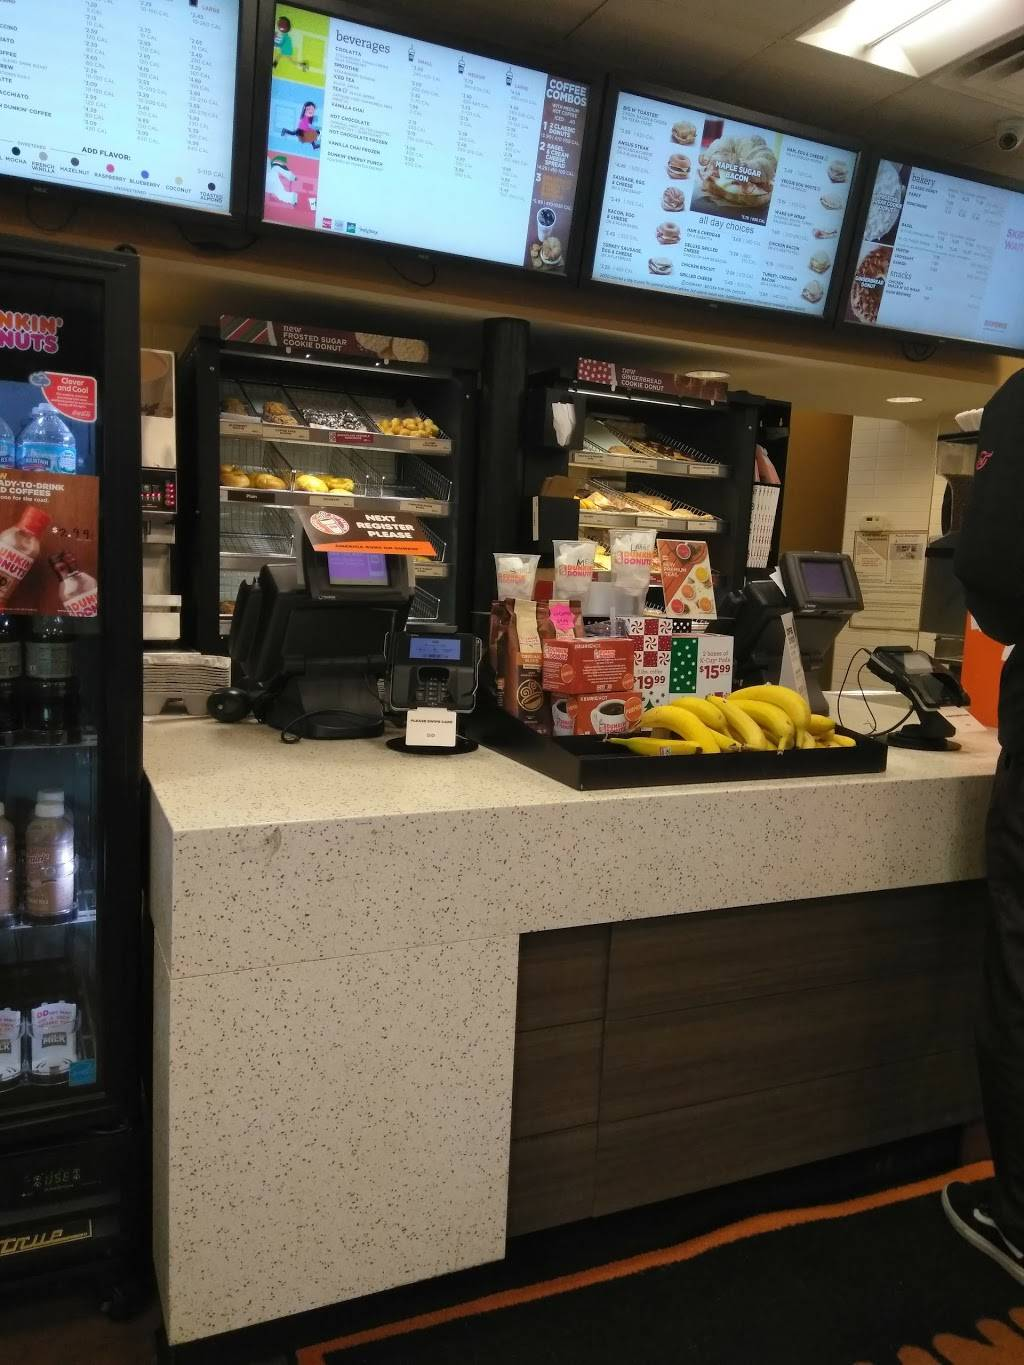 Dunkin Donuts   cafe   2300 N Clark St, Chicago, IL 60614, USA   7739153839 OR +1 773-915-3839